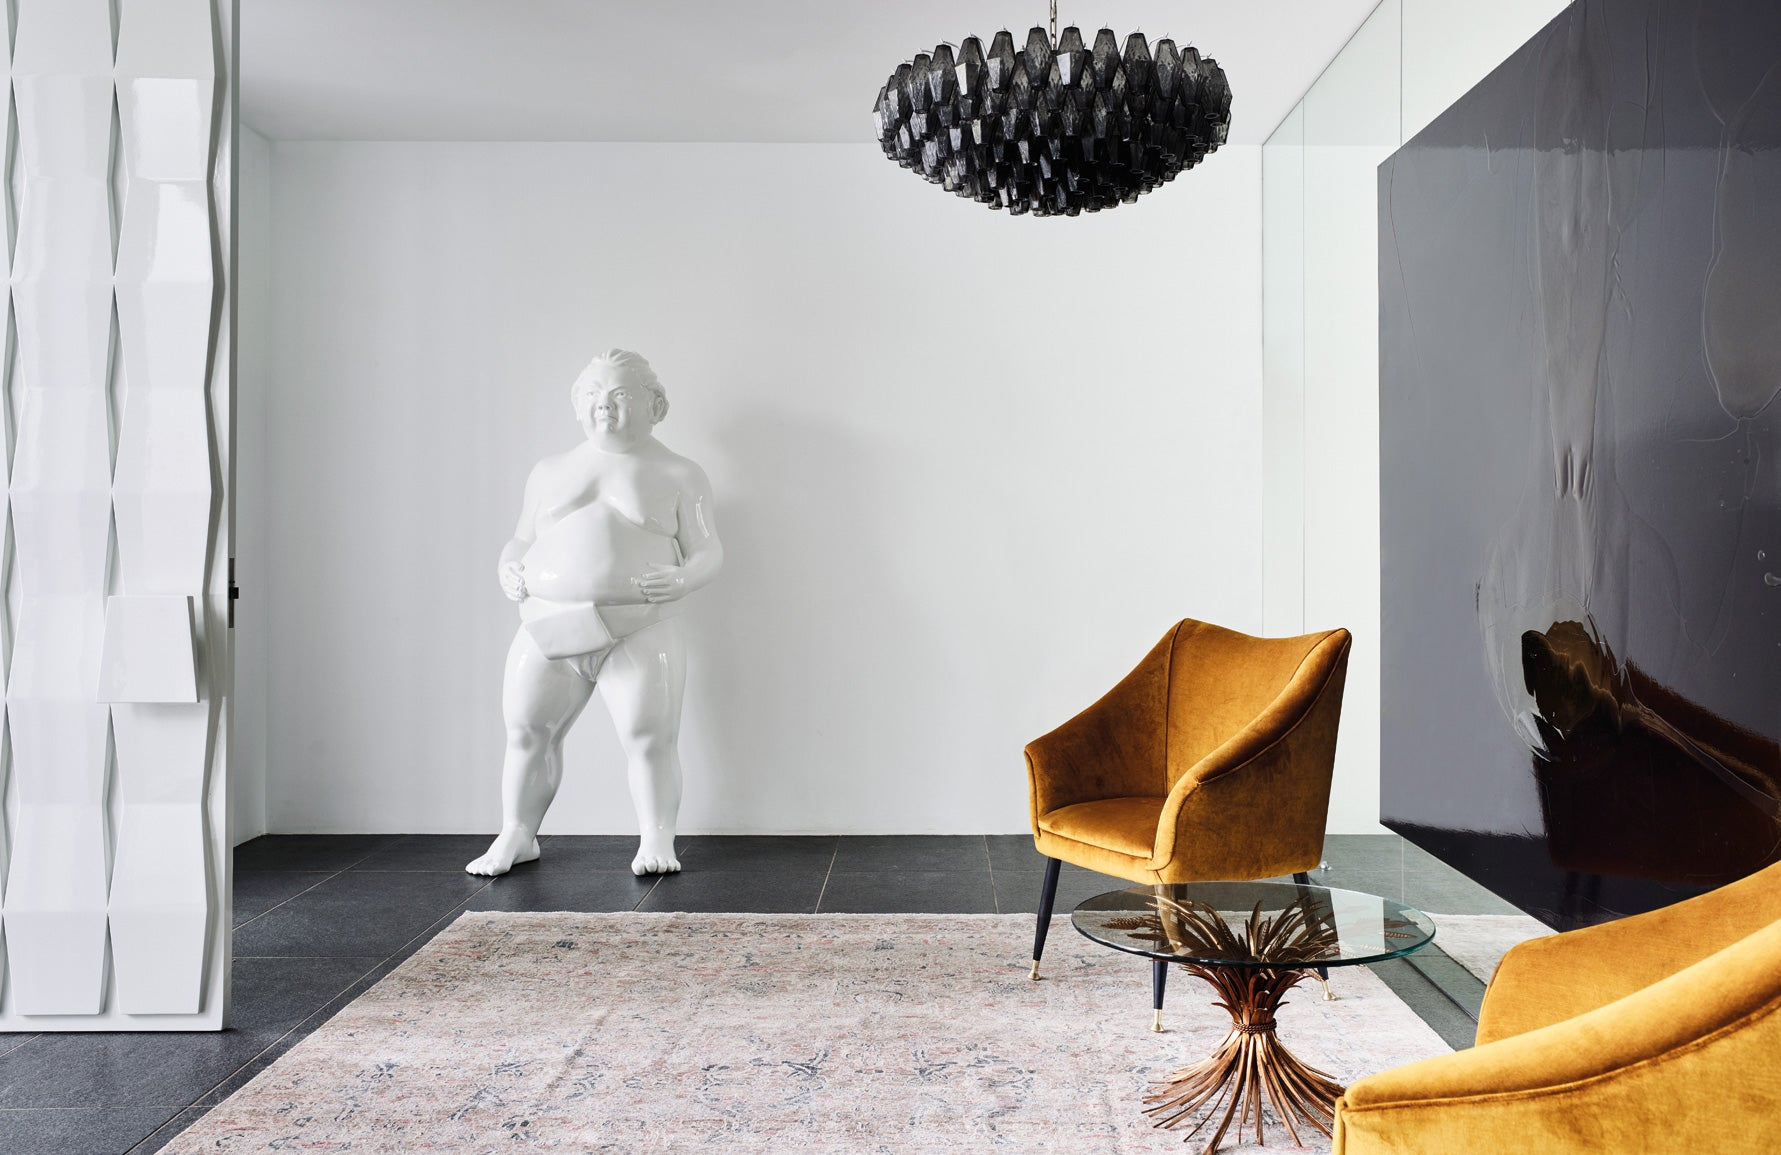 How To Use Oversized Decor In Your Space | Large Sculptures | Design by David Hicks | Read more in the LuxDeco.com Style Guide